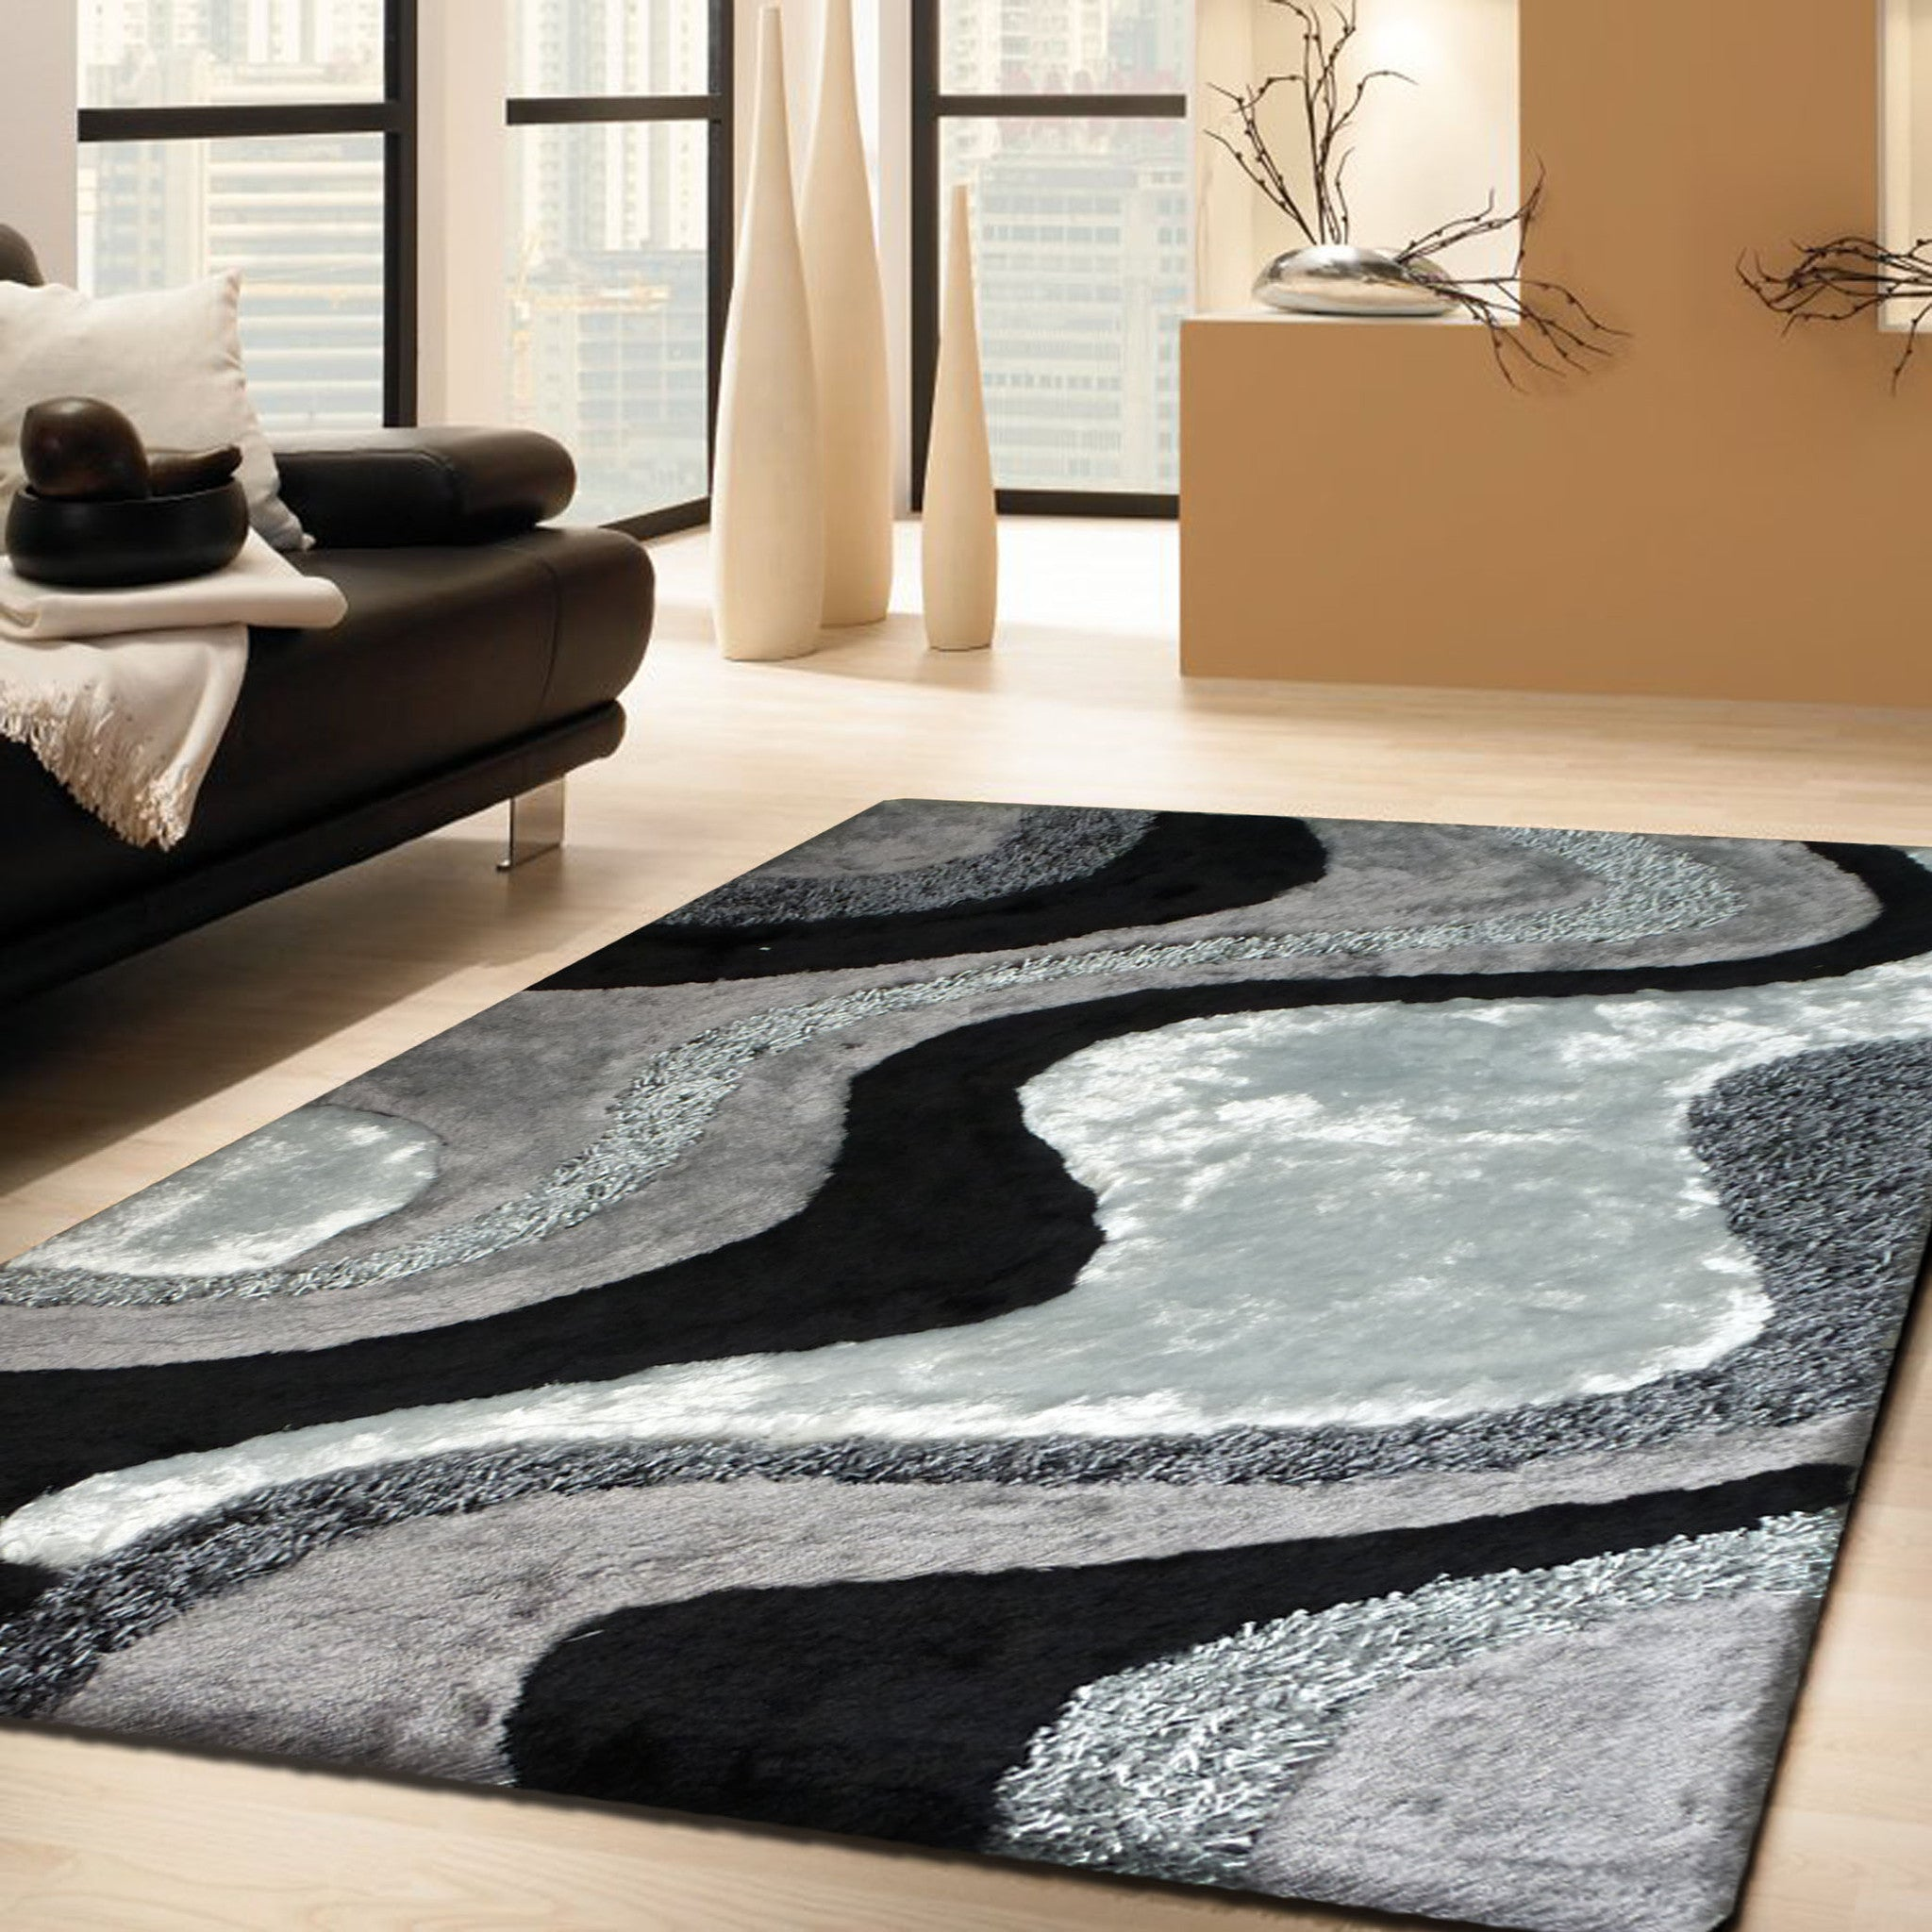 grey with black shag rug with hand carving design 76 x 103 black shag rug